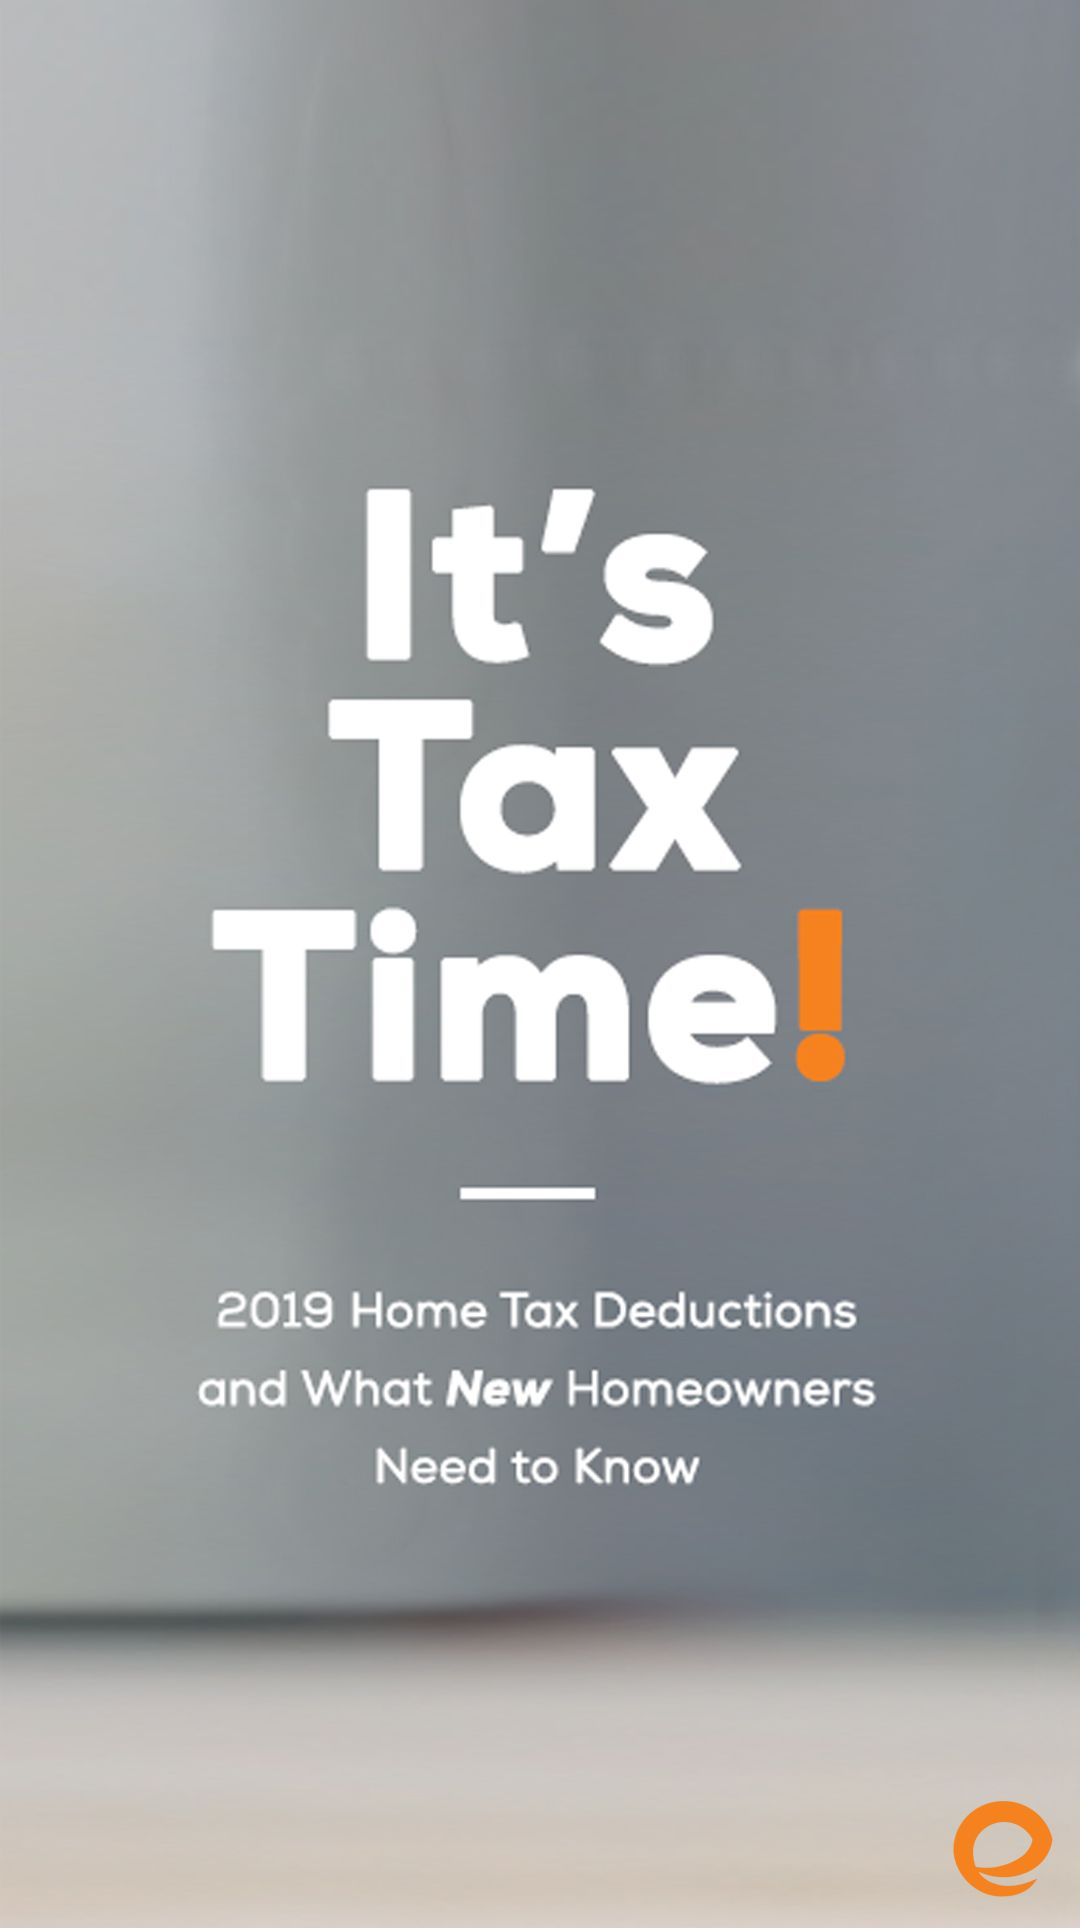 2019 Home Tax Deductions And What New Homeowners Need To Know